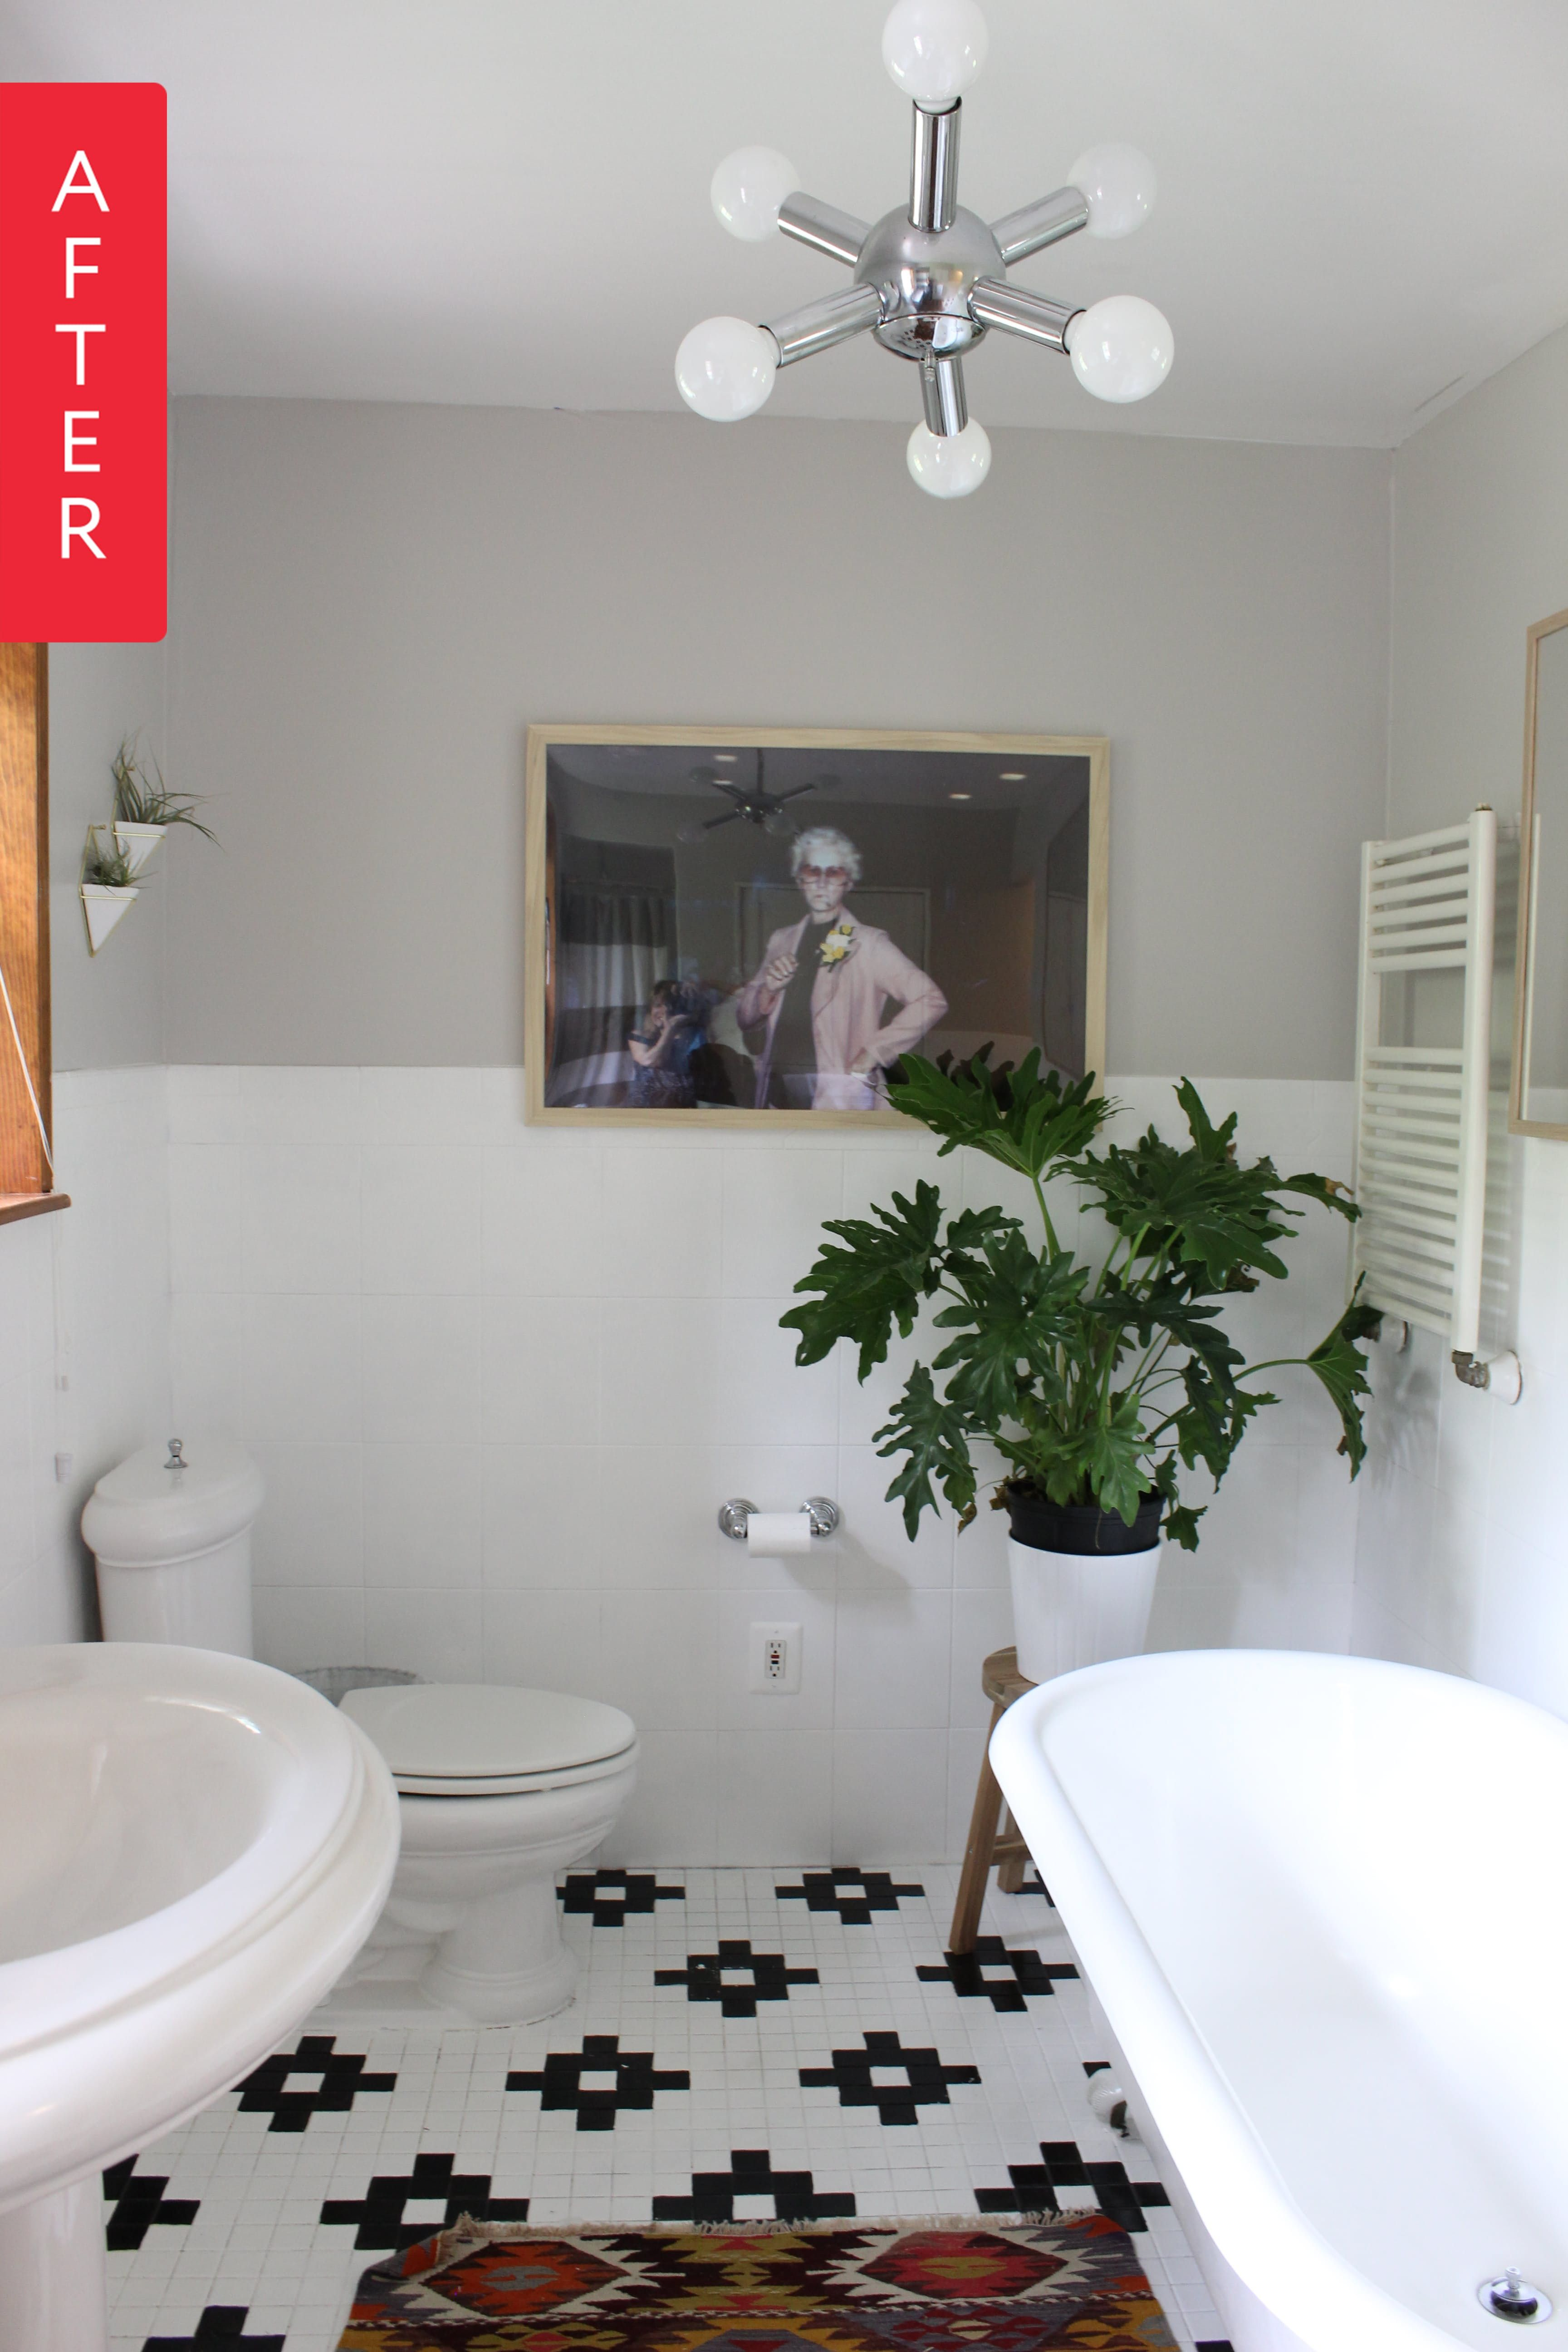 Before & After: A Truly Amazing Tile Turnaround | Room ...